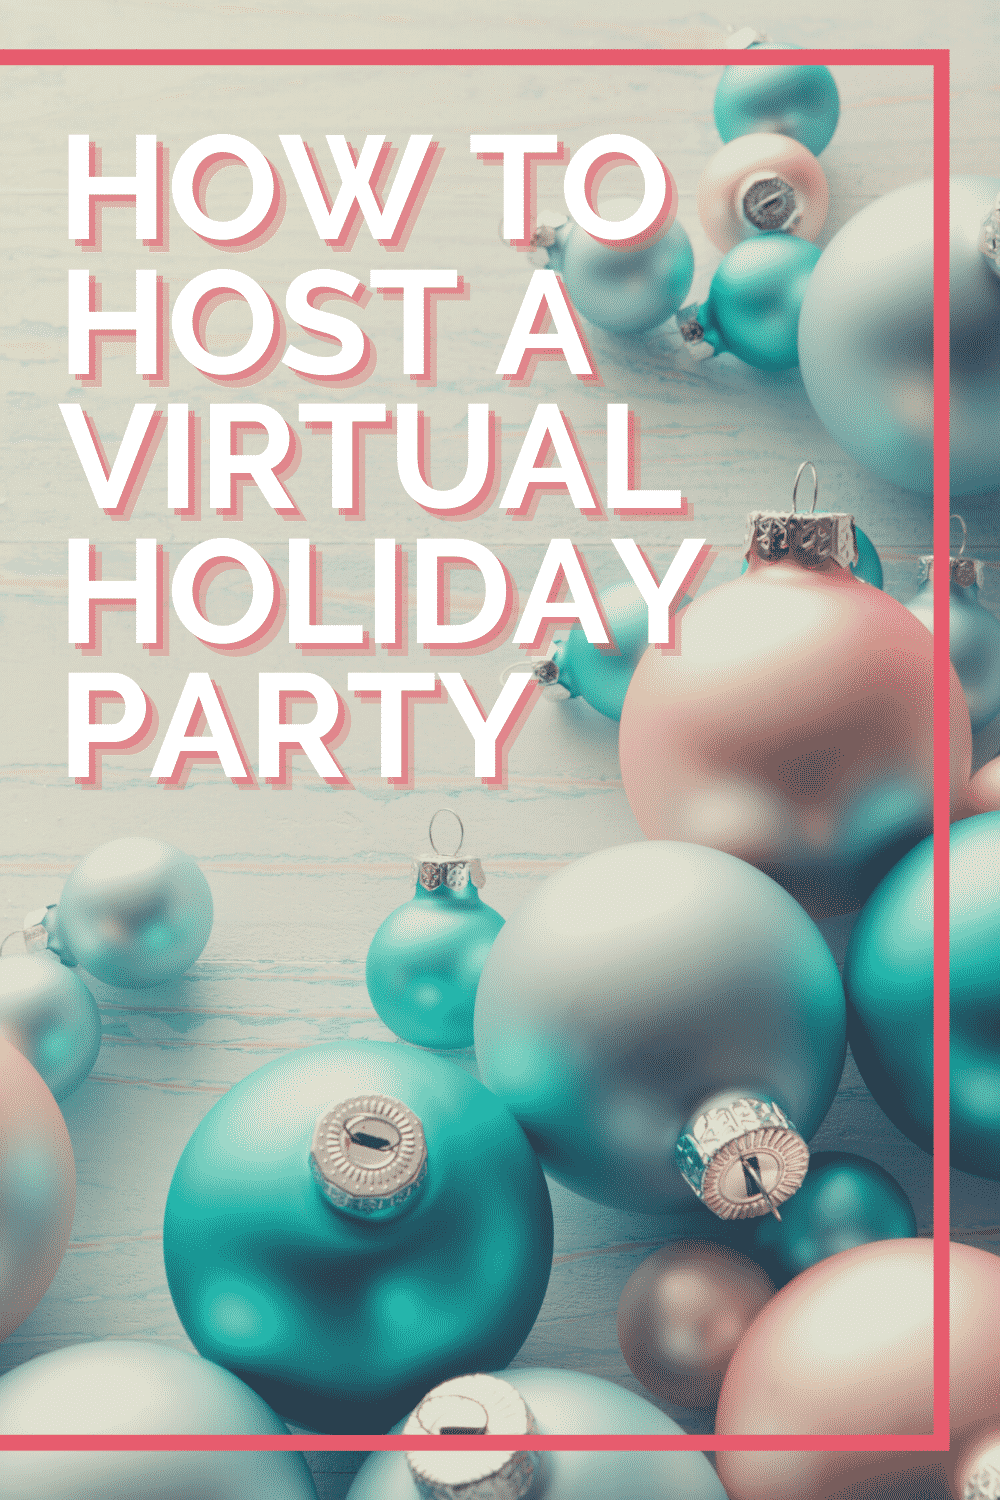 How to Host a Virtual Holiday Party